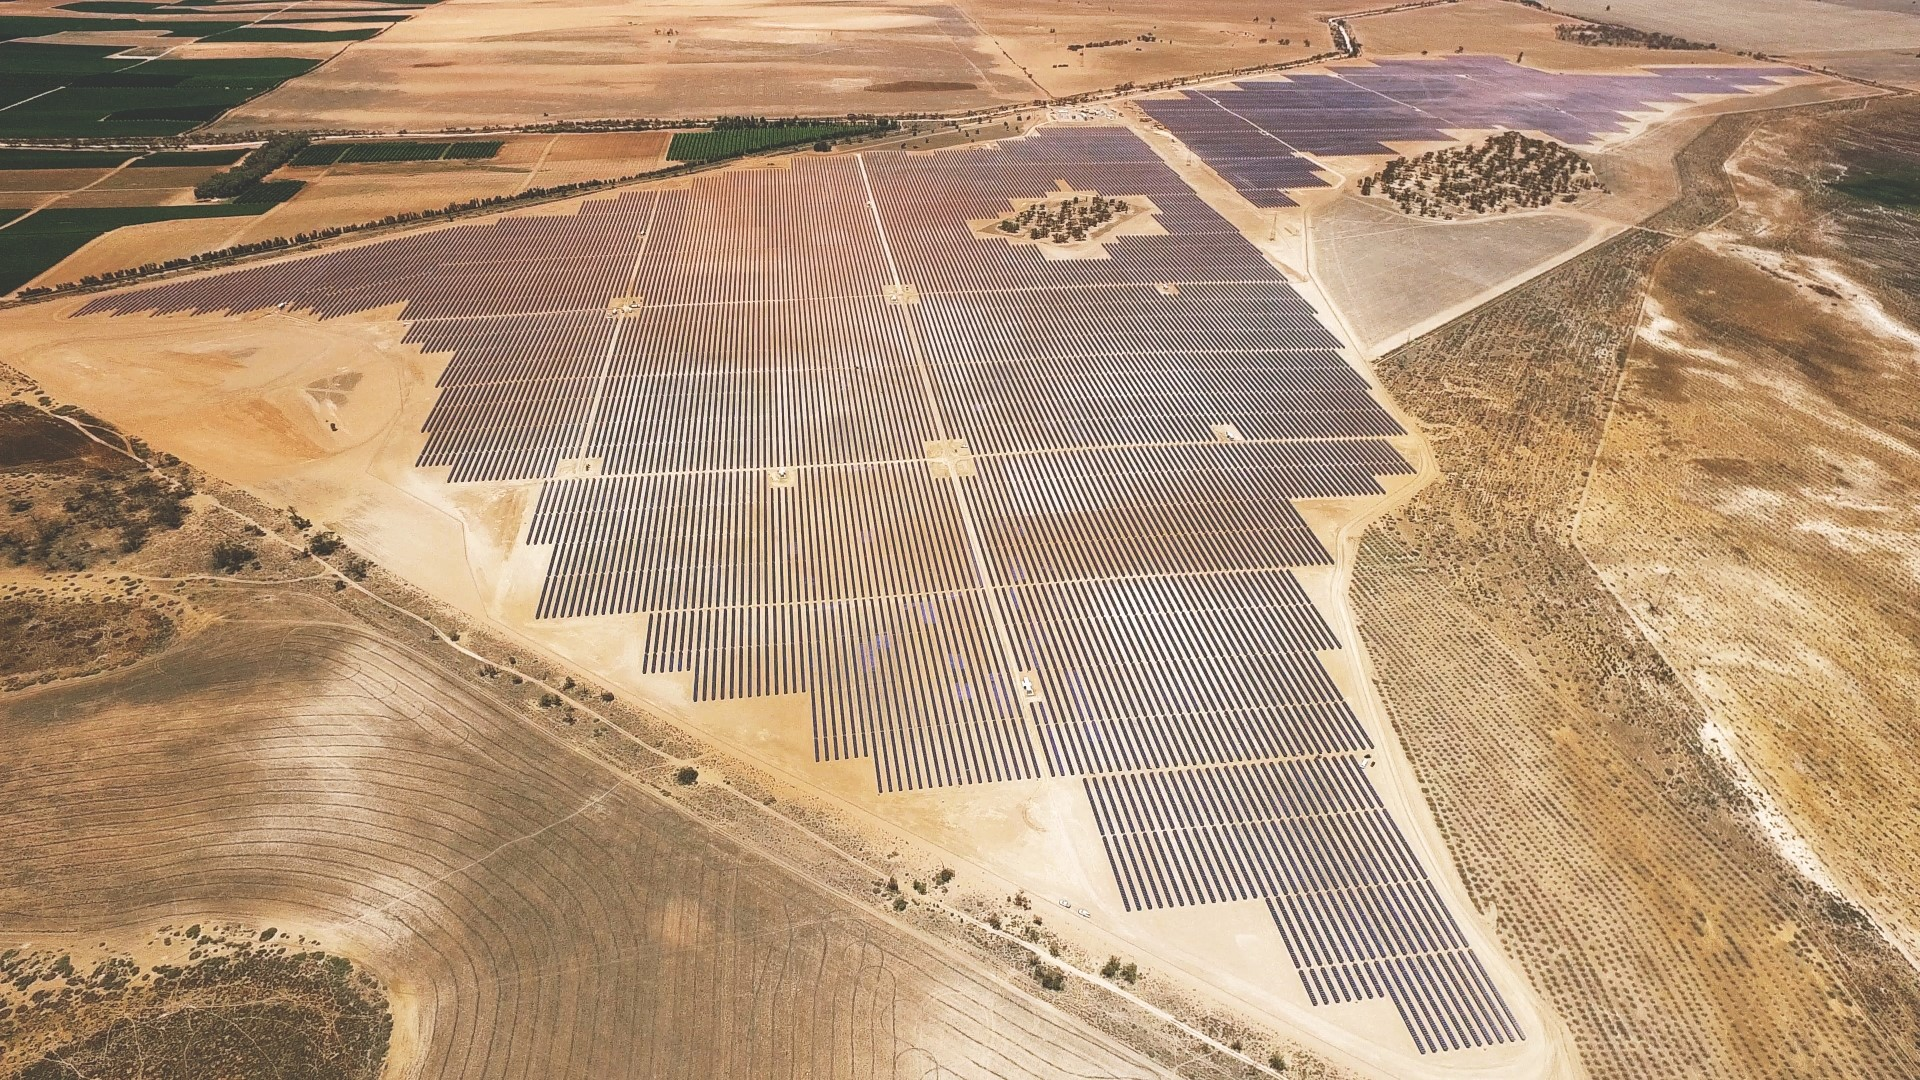 CUB has secured a power purchase agreement (PPA) with BayWa r.e. to supply renewable energy from Karadoc Solar Farm.  Photo credit: BayWa r.e.